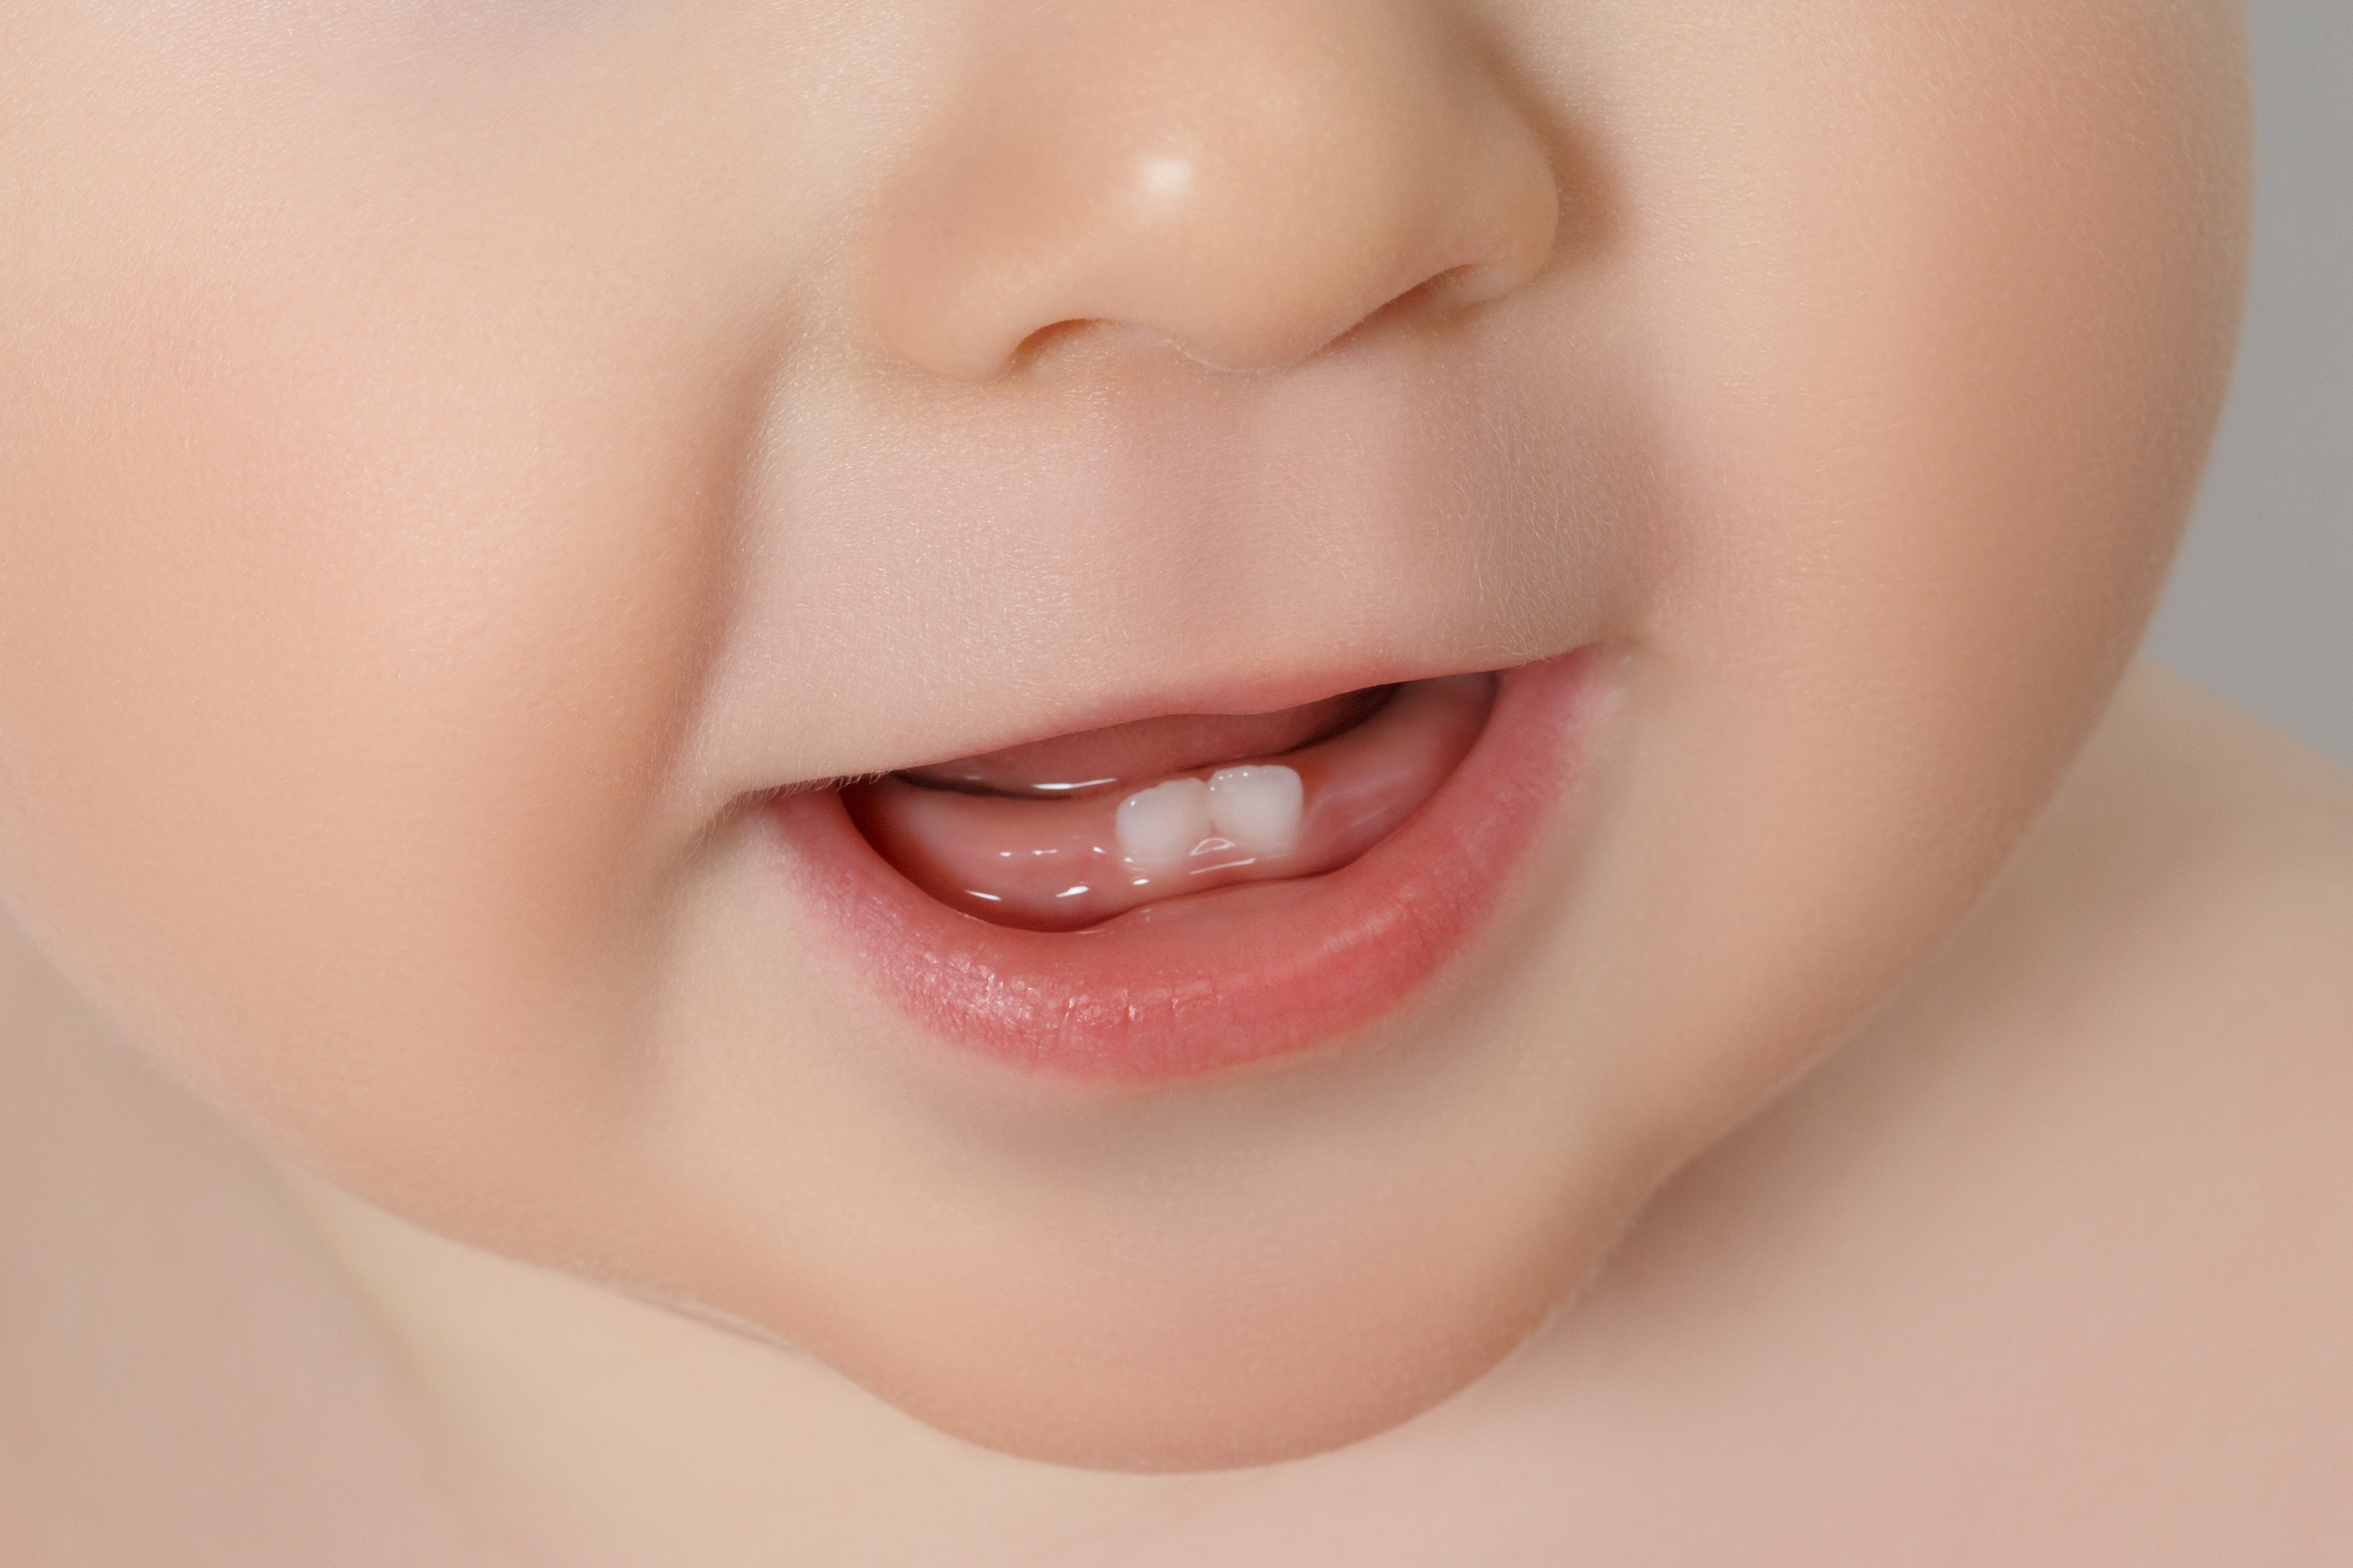 Teething and tooth development | Family Toolbox - Baby, child ...